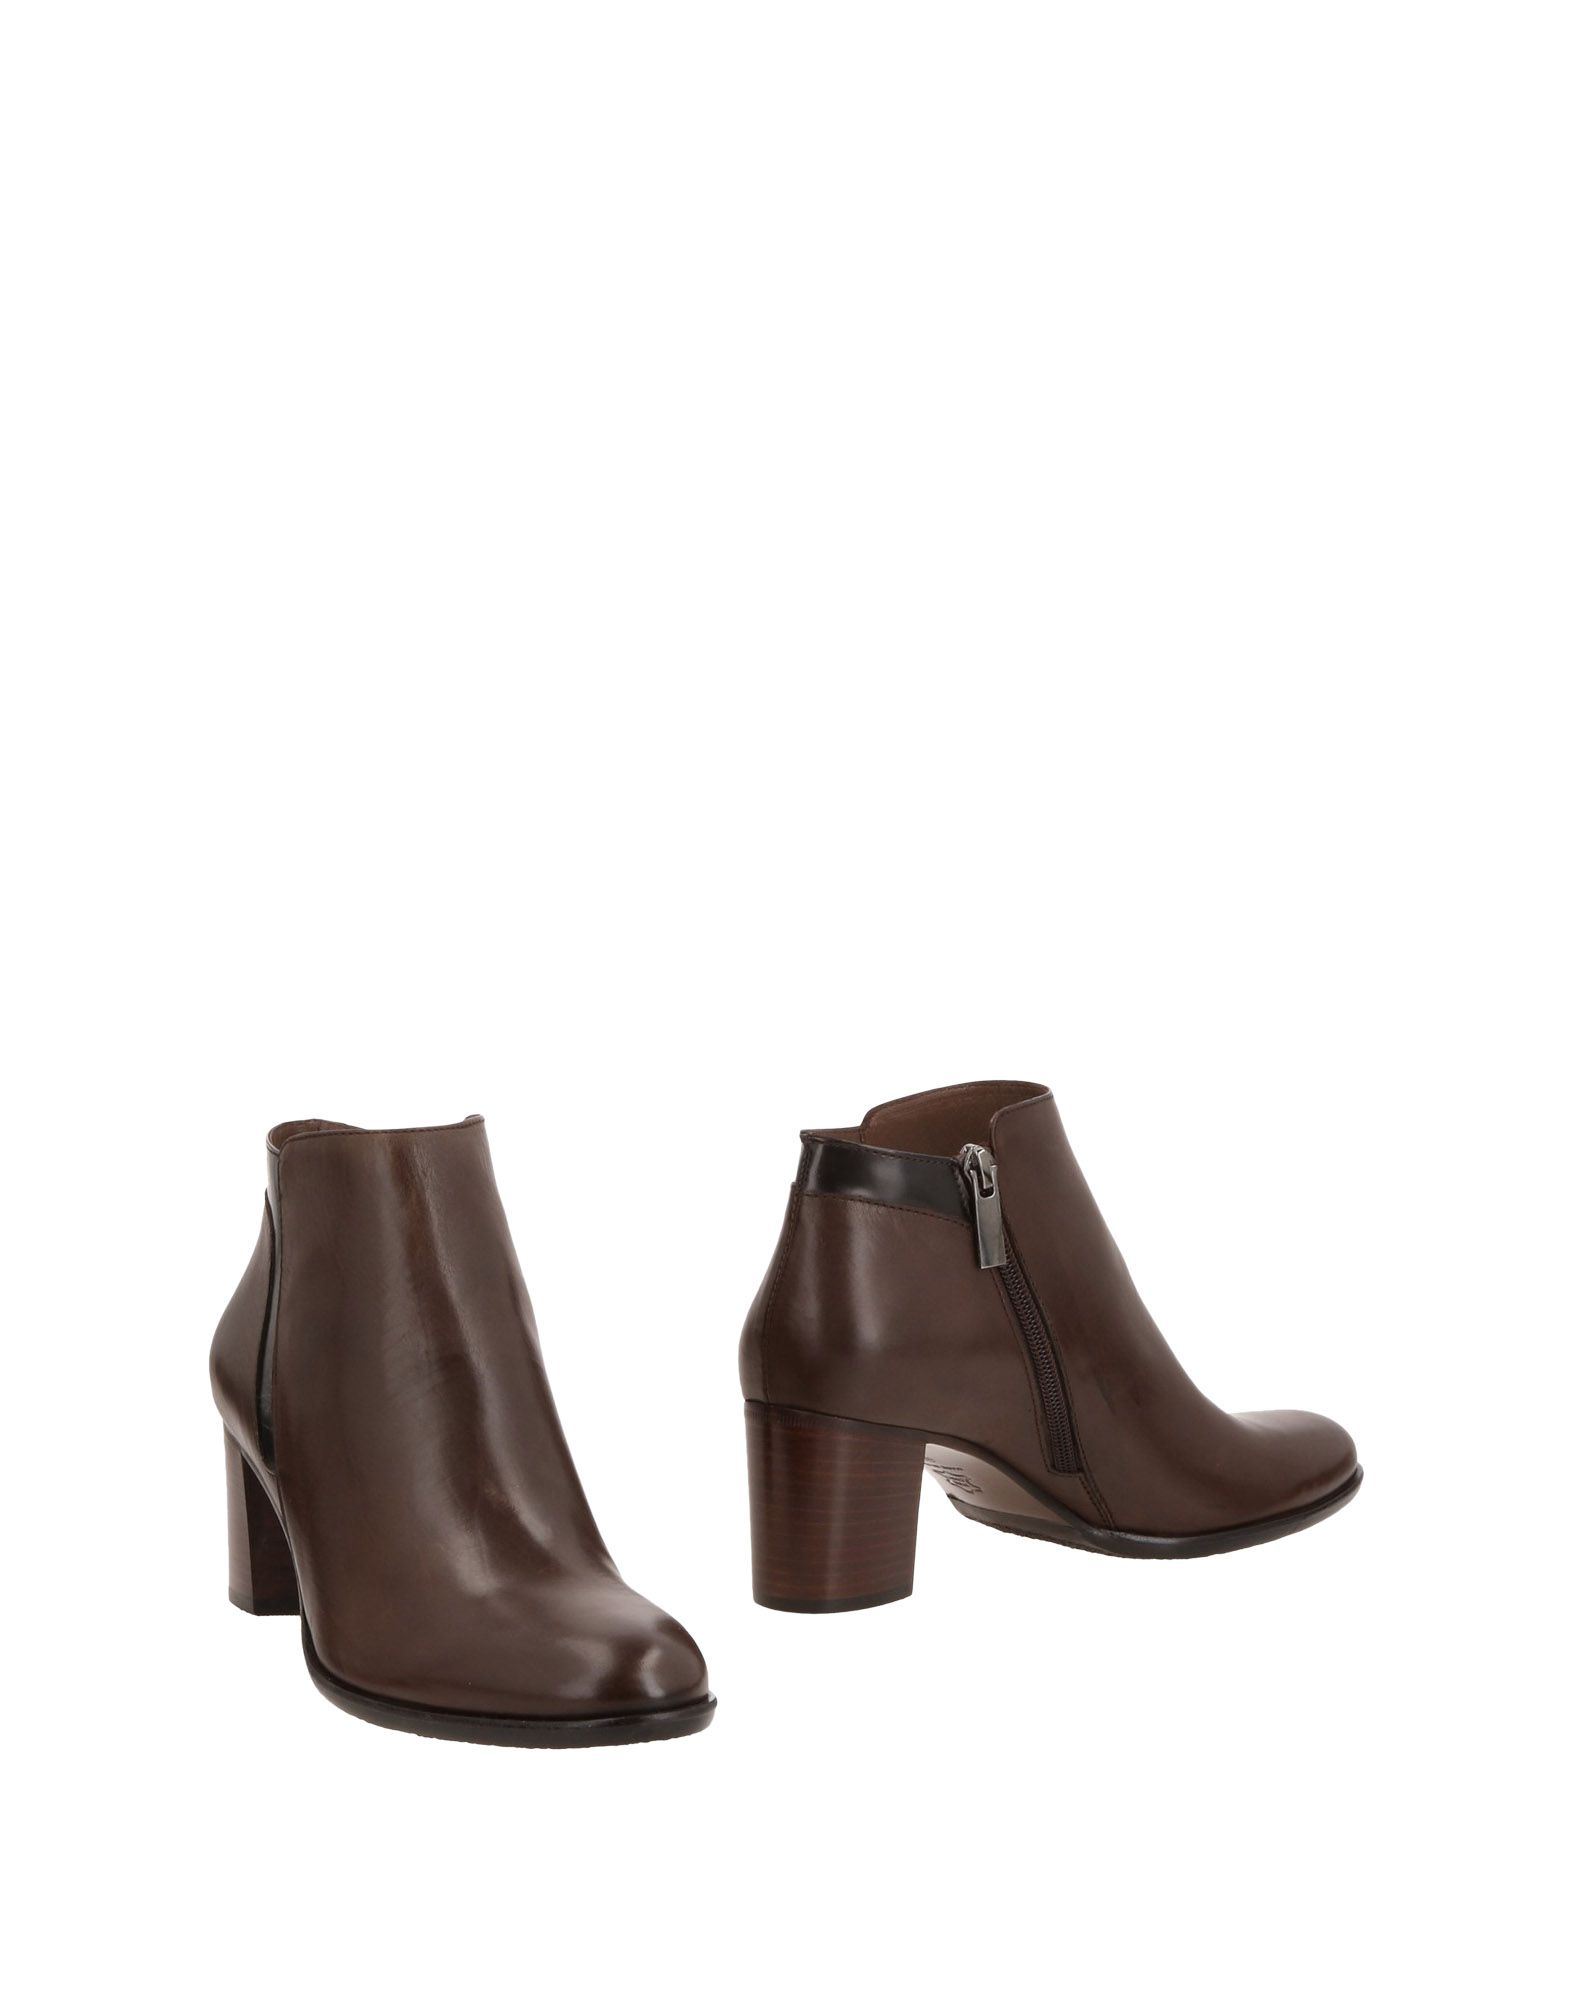 Bottine Calpierre Femme - Bottines Calpierre sur